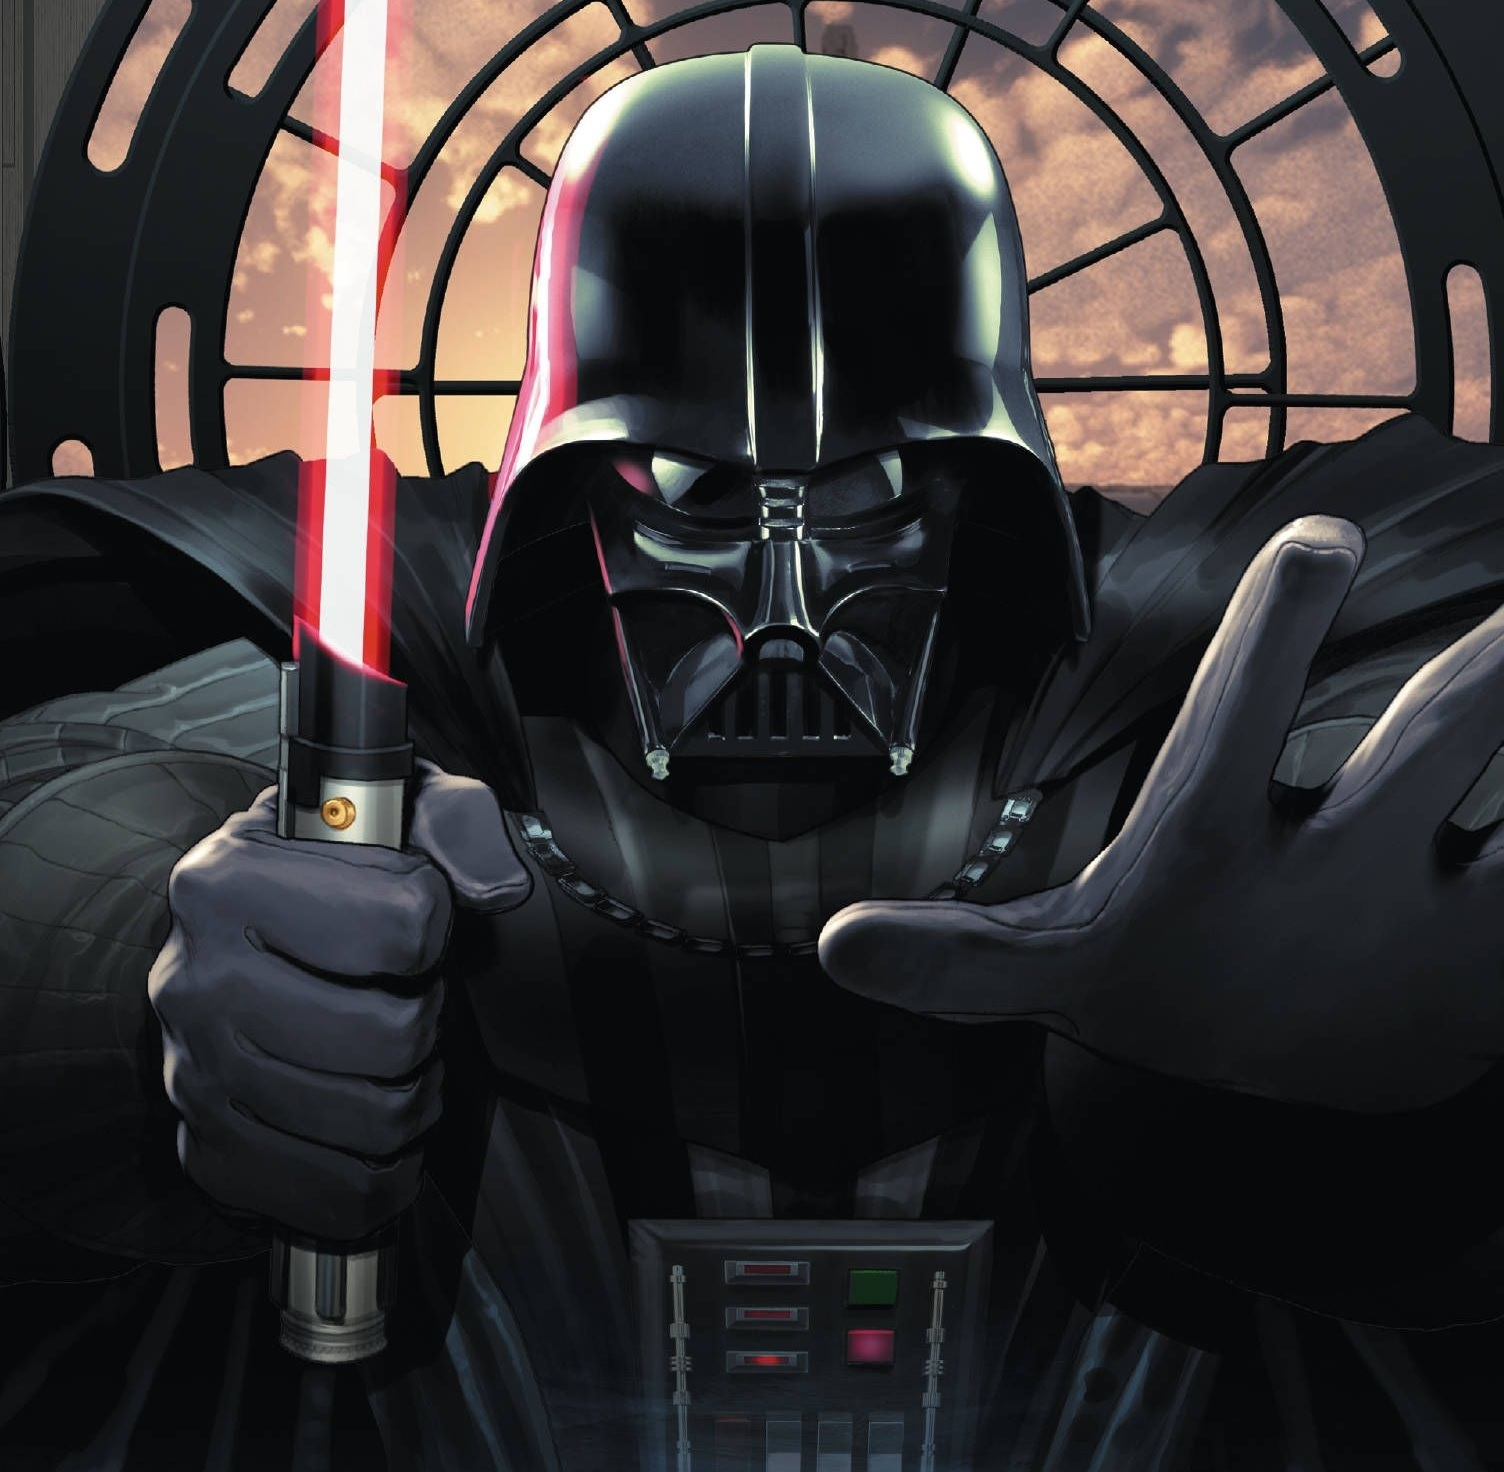 Darth-Vader-and-the-Ninth-Assassin.jpg